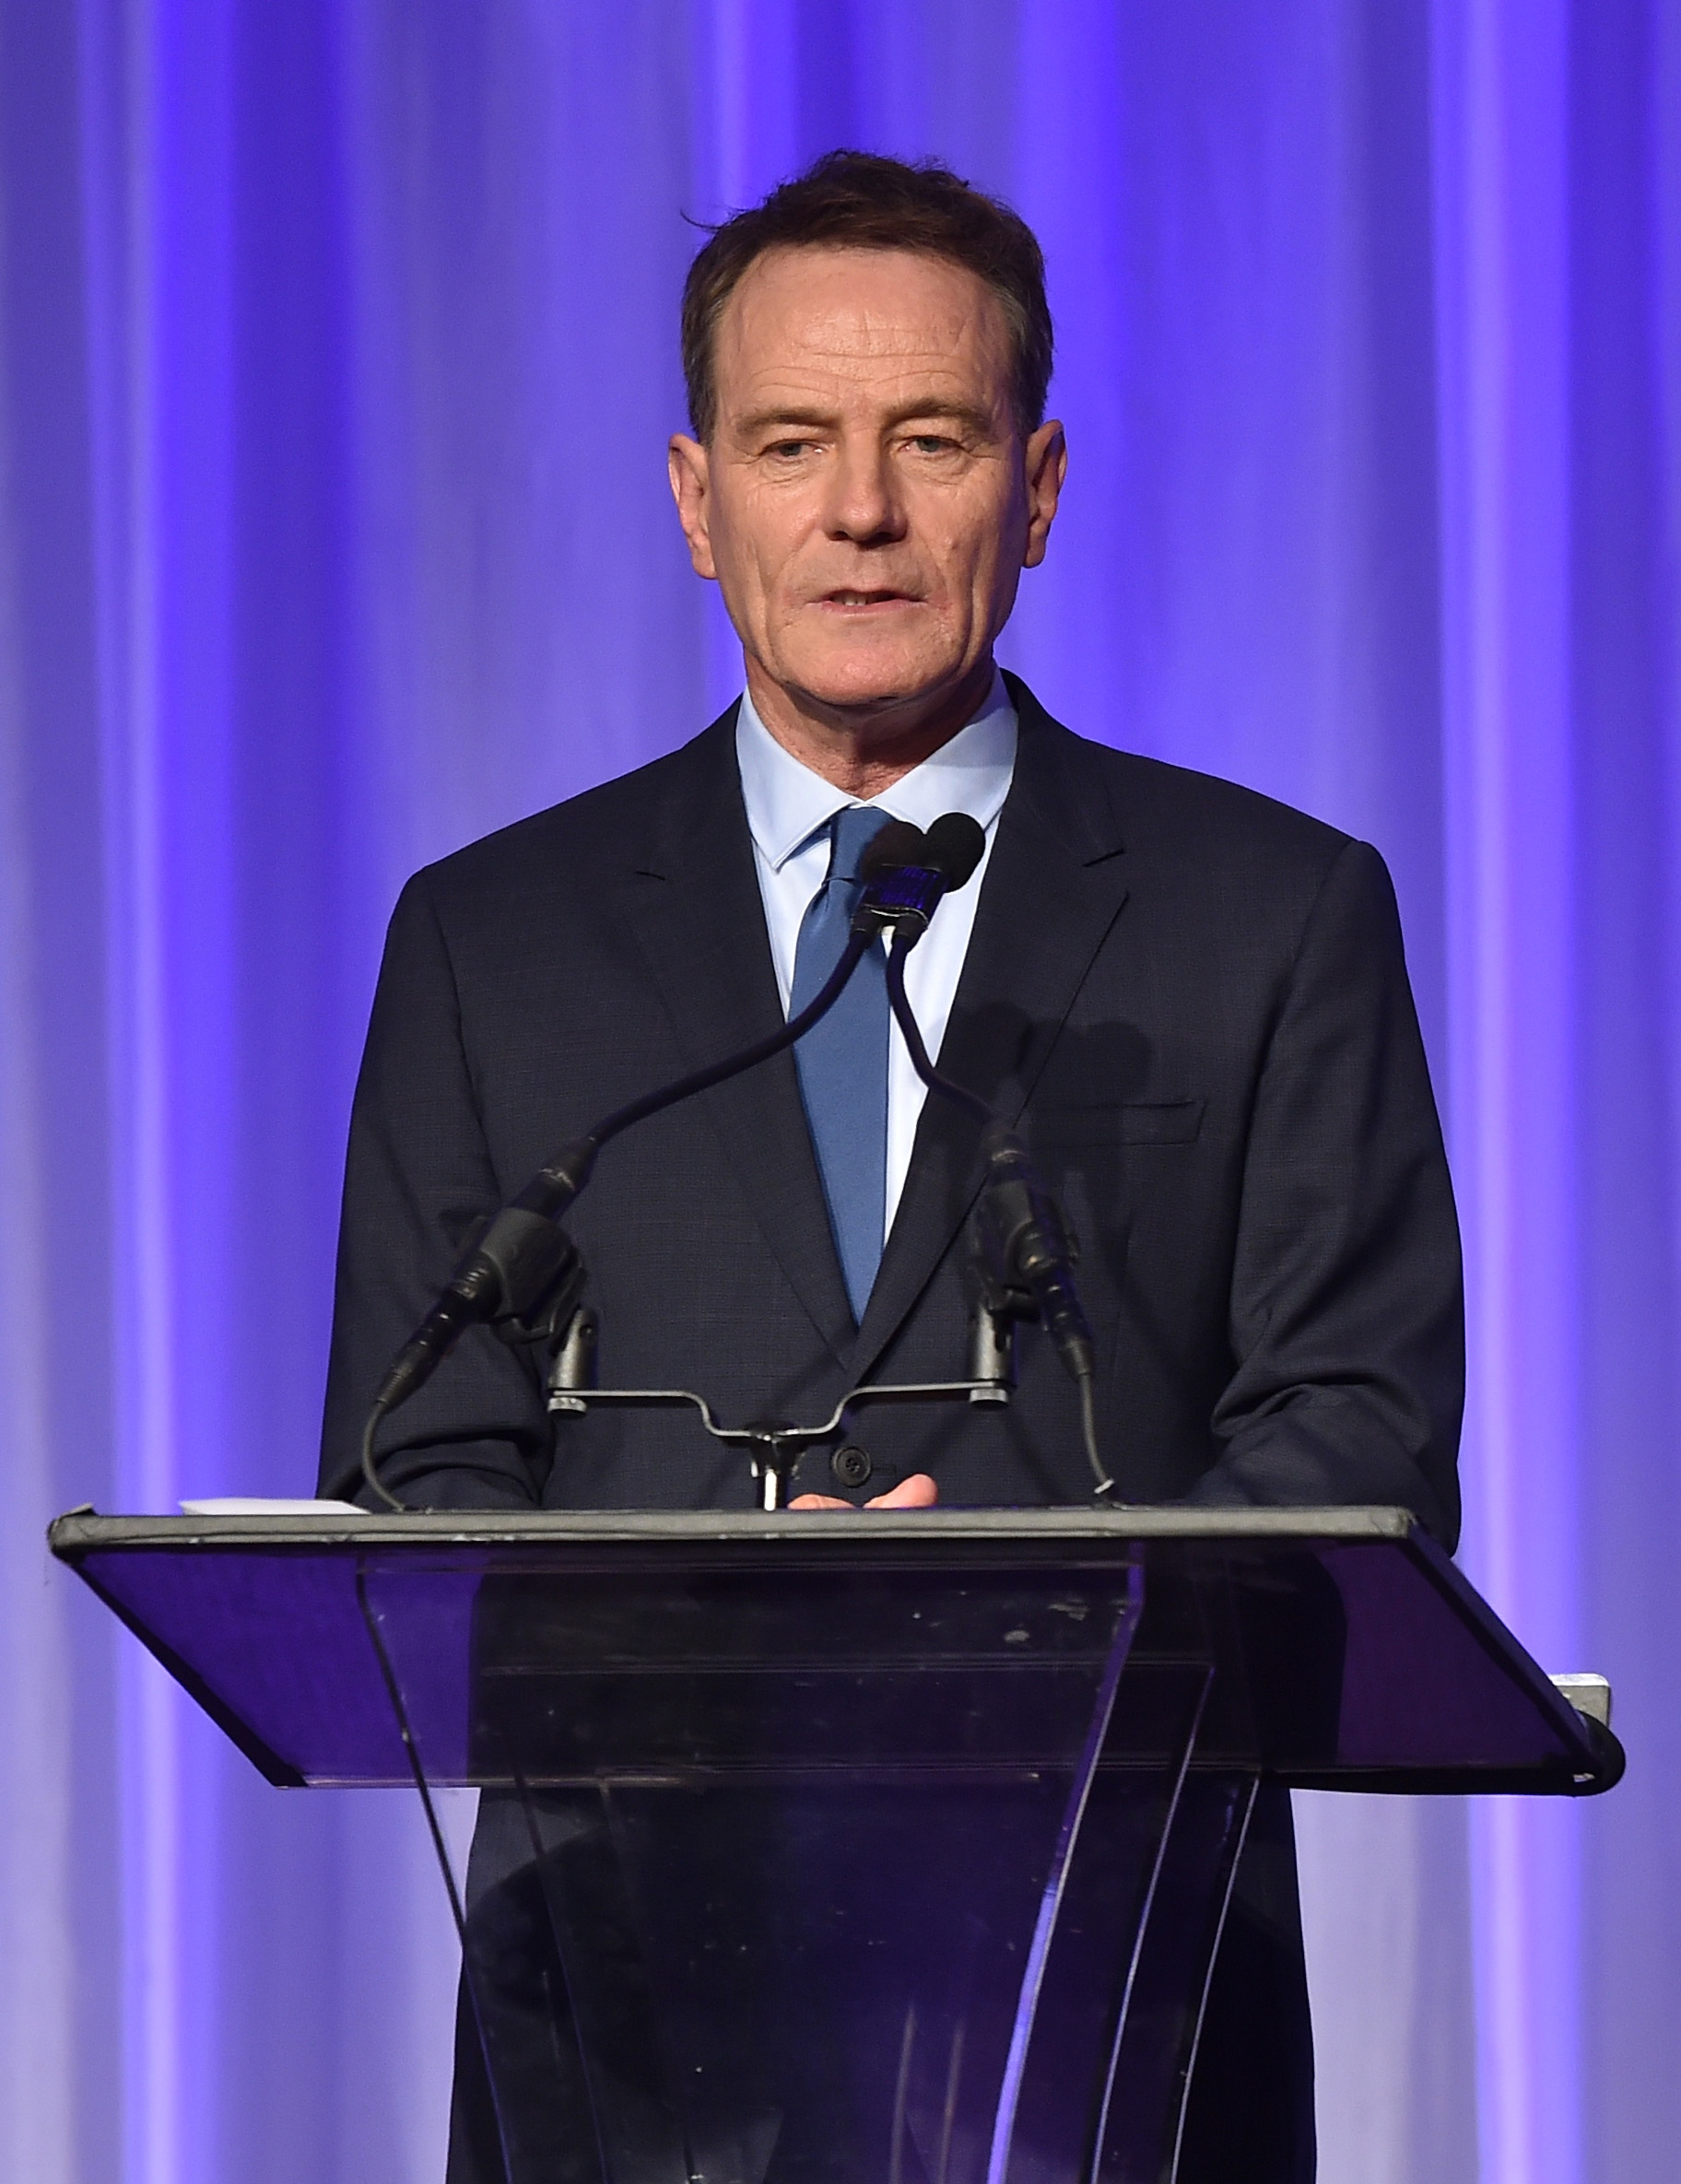 Actor Bryan Cranston accepts grant on behalf of LACC onstage during HFPA Annual Grants Banquet at the Beverly Wilshire Four Seasons Hotel on August 13, 2015 in Beverly Hills, California.